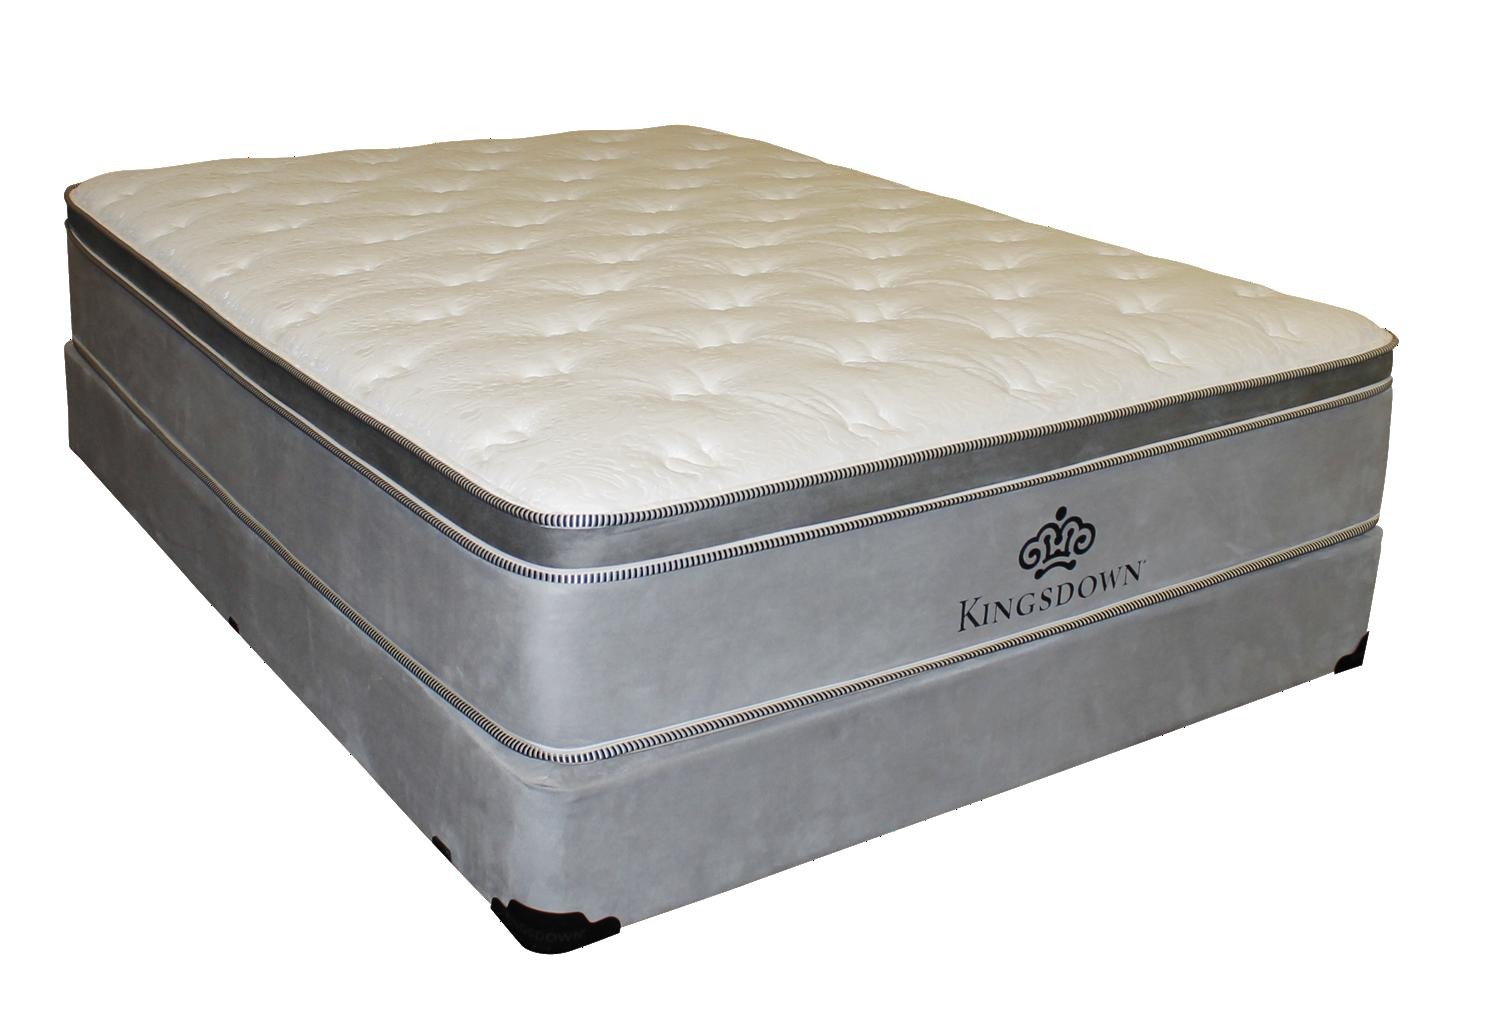 Kingsdown Silver Luxury Firm Mattress Reviews Goodbed Com